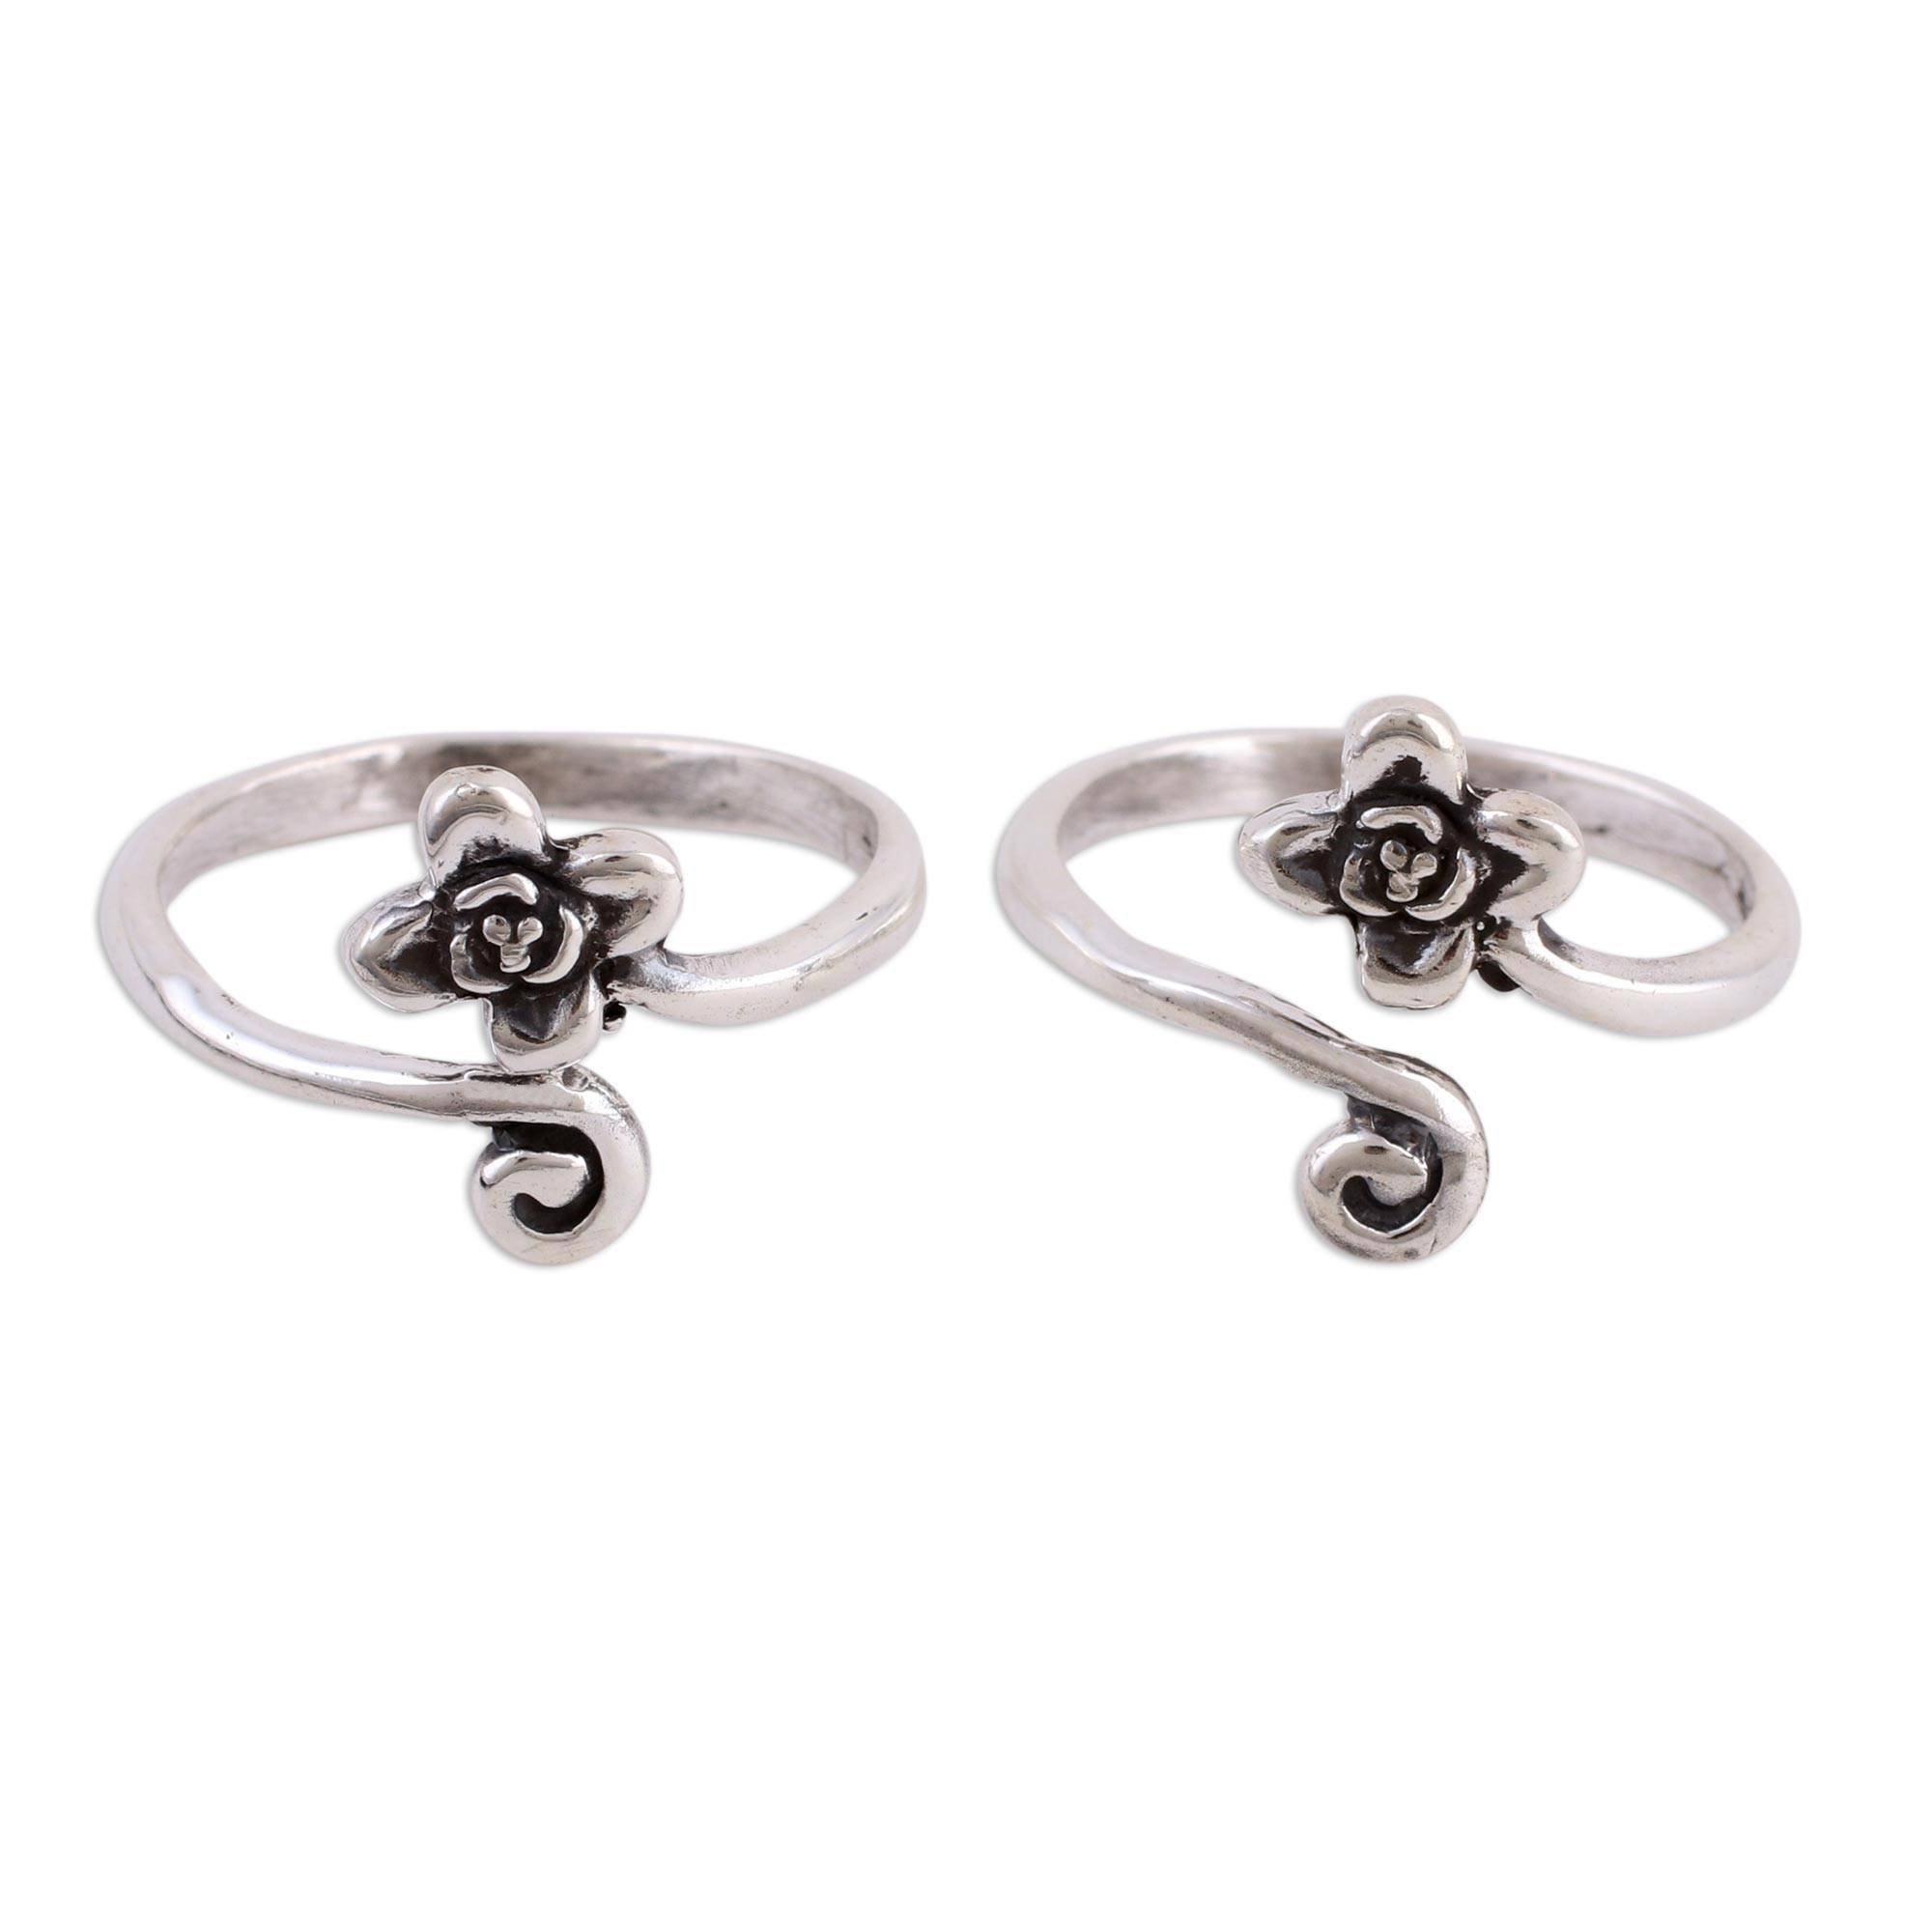 NOVICA .925 Sterling Silver Set of 2 Adjustable Floral Toe Rings, Flower and Swirl' (pair) by NOVICA